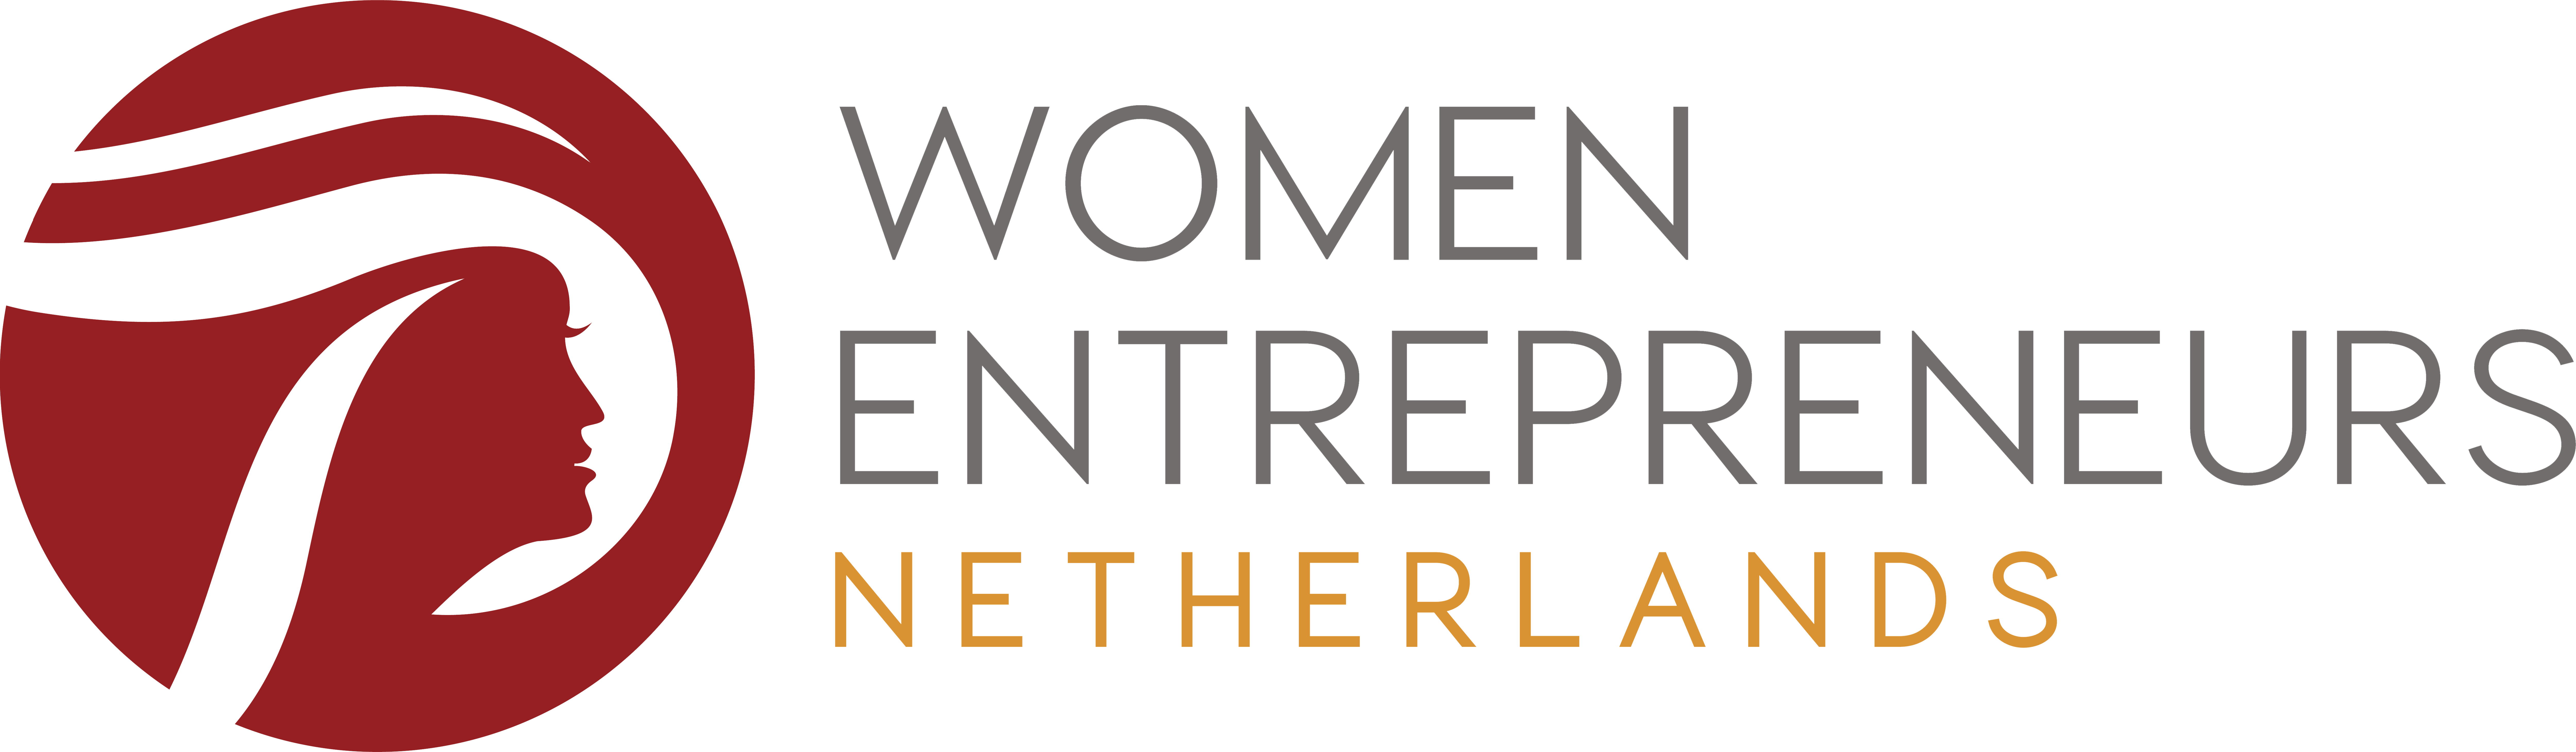 Women Entrepreneurs Netherlands